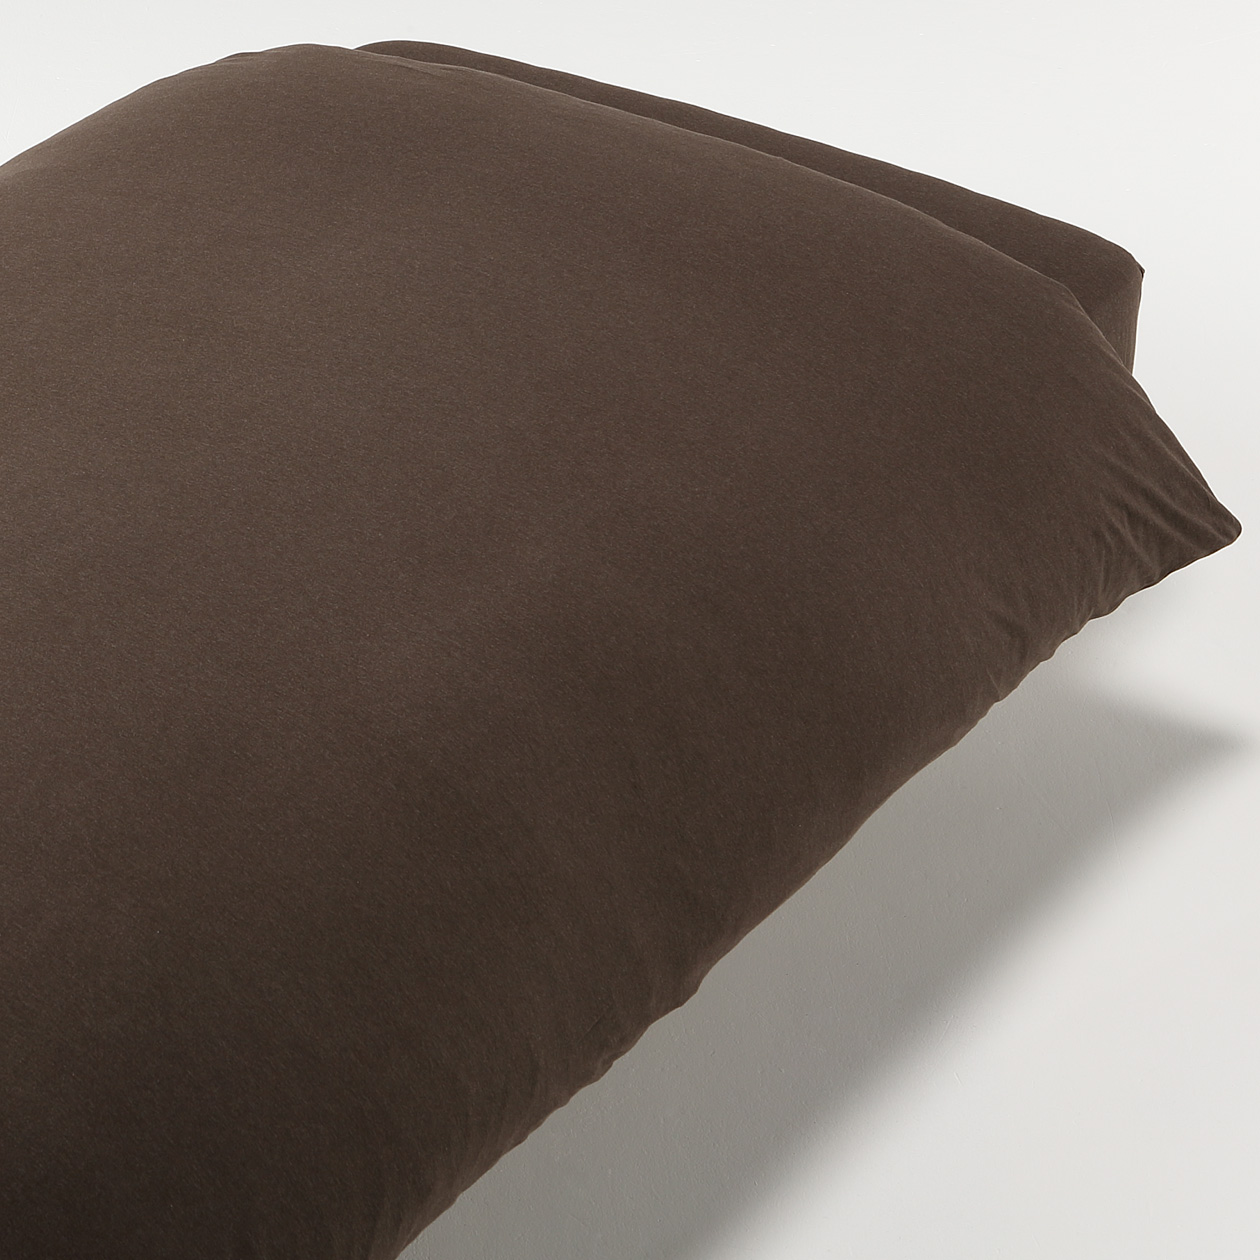 Organic Cotton Jersey Duvet Cover K Brown 230 210cm Muji